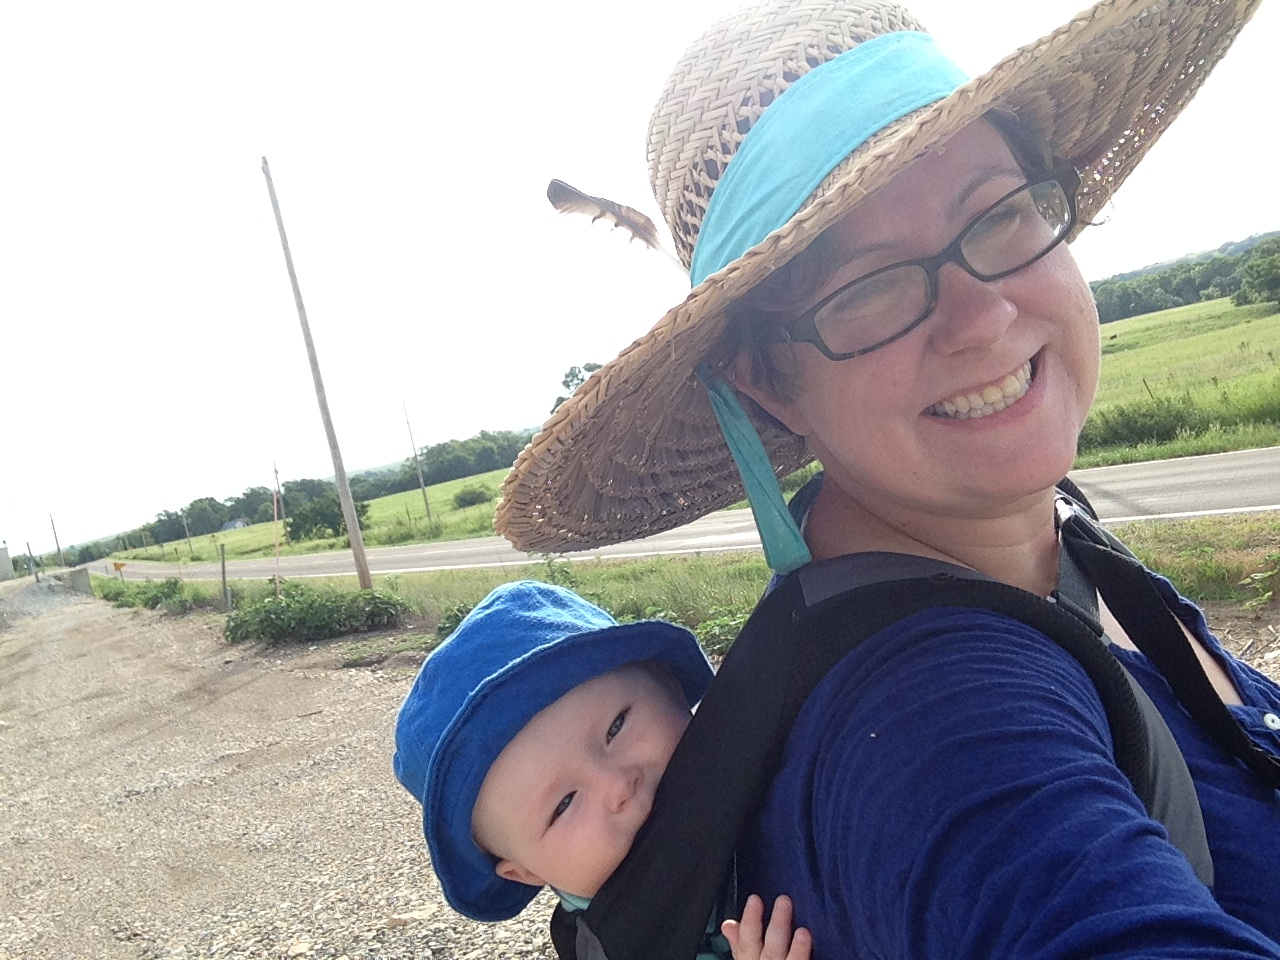 We spent the week reading, drawing, crocheting, and taking lots of long walks to see the countryside. We were working on preparing pieces for an exhibition,  Pray for Oil  , to be held at   the Arts Council of Southeast Missouri in October 2015  .